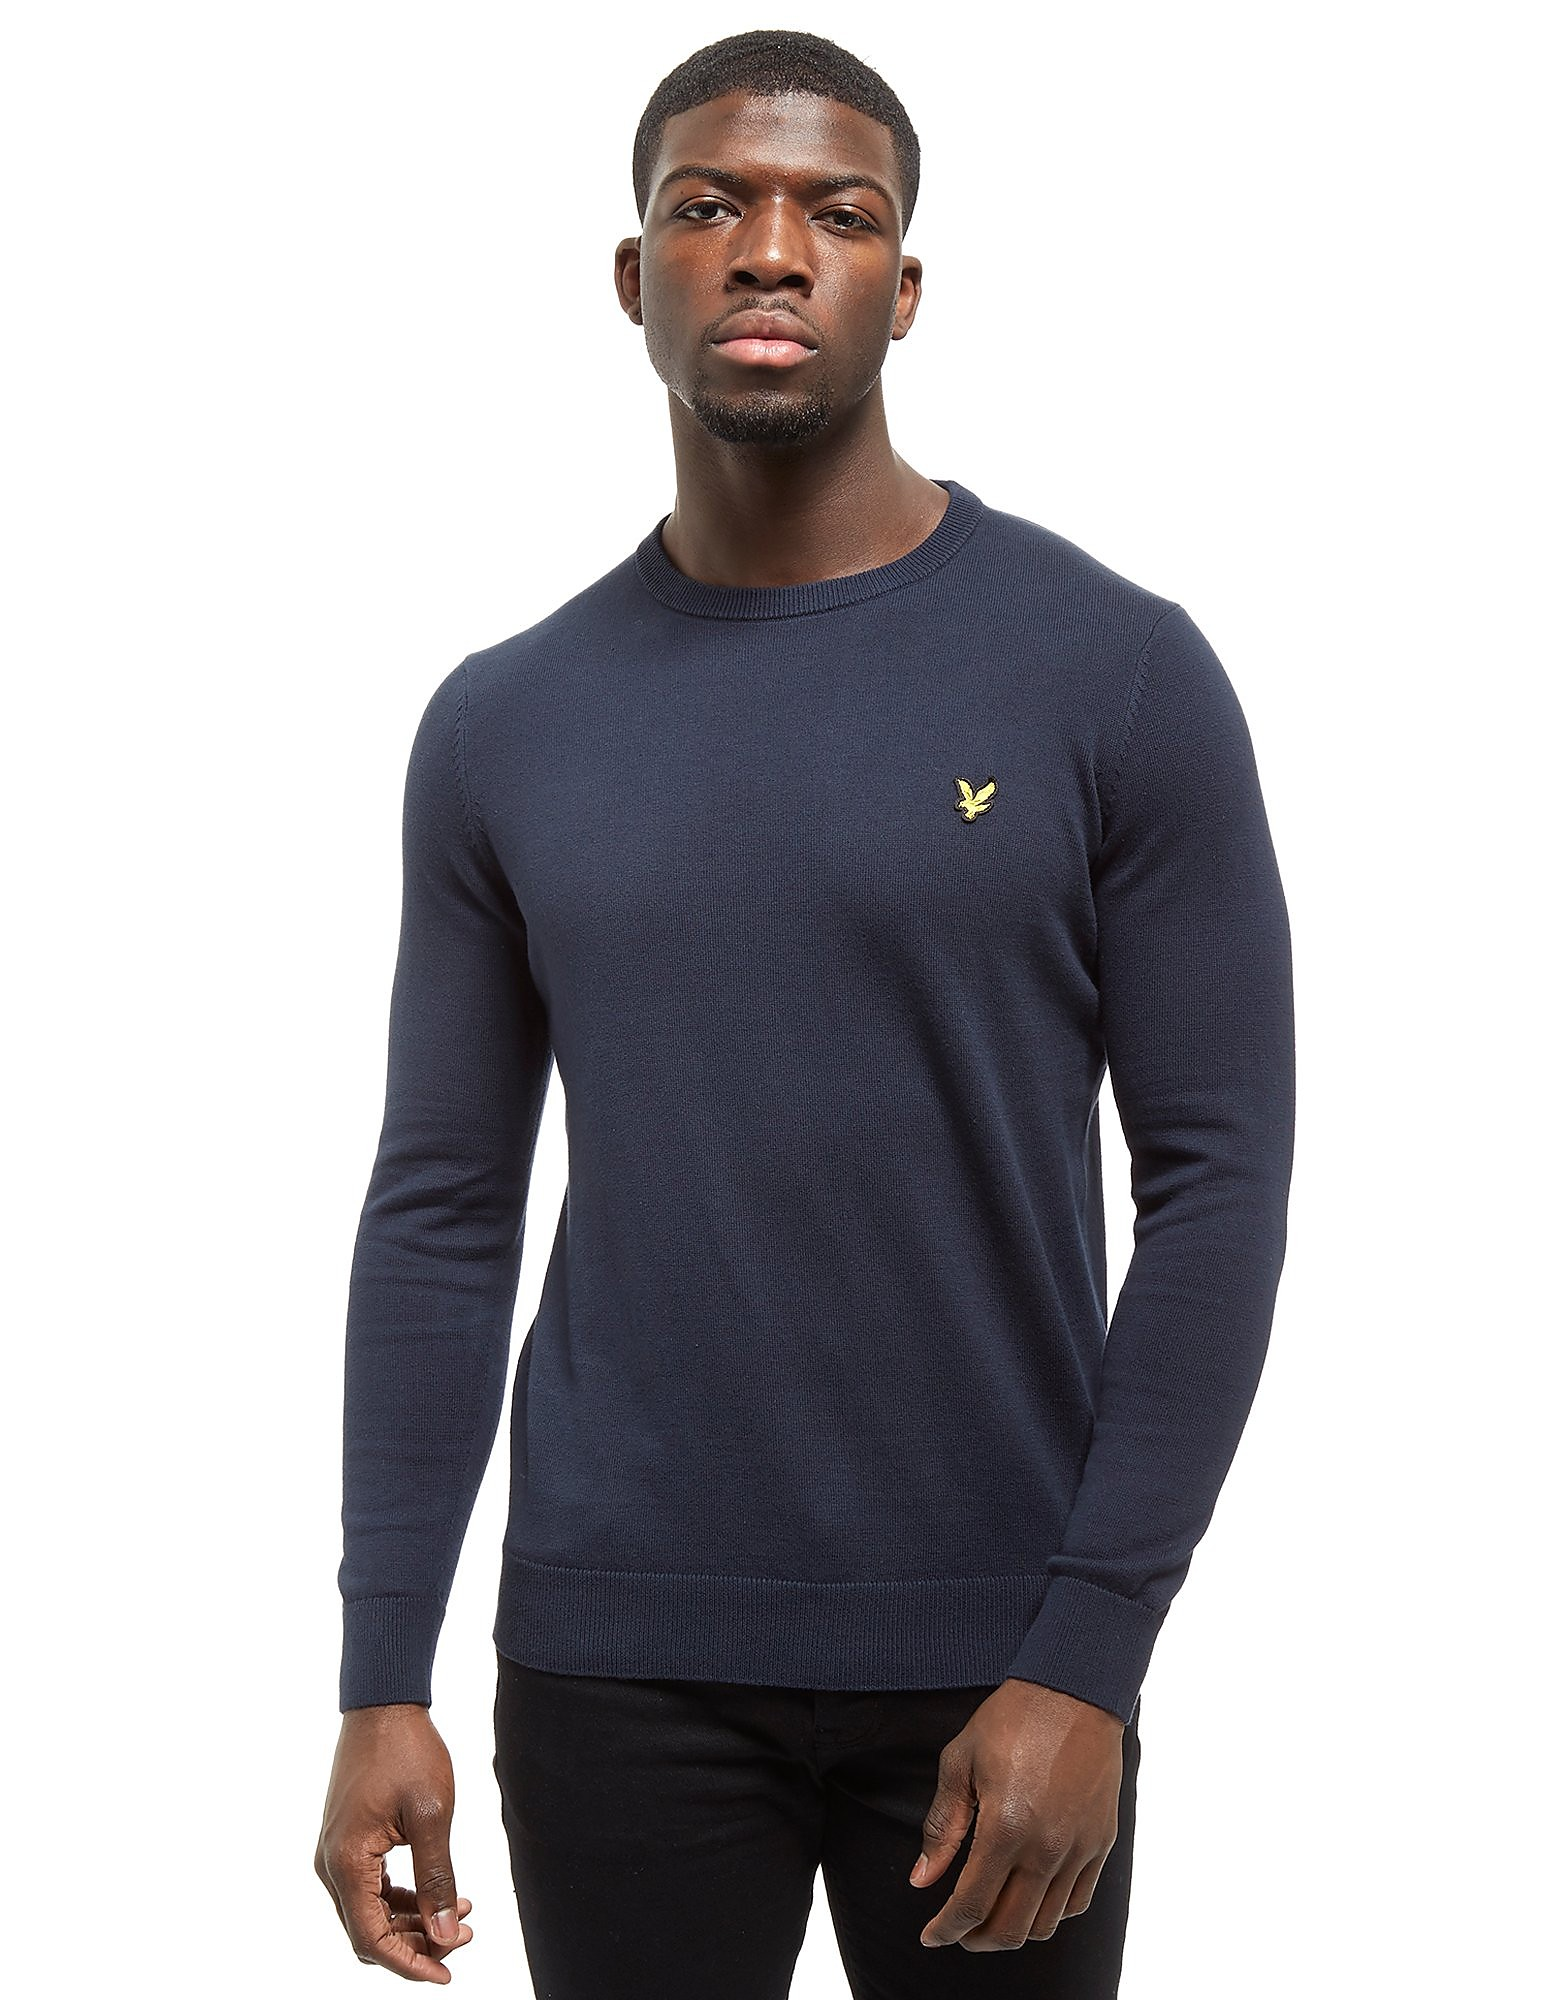 Lyle & Scott Crew Cotton Knit Core Sweatshirt